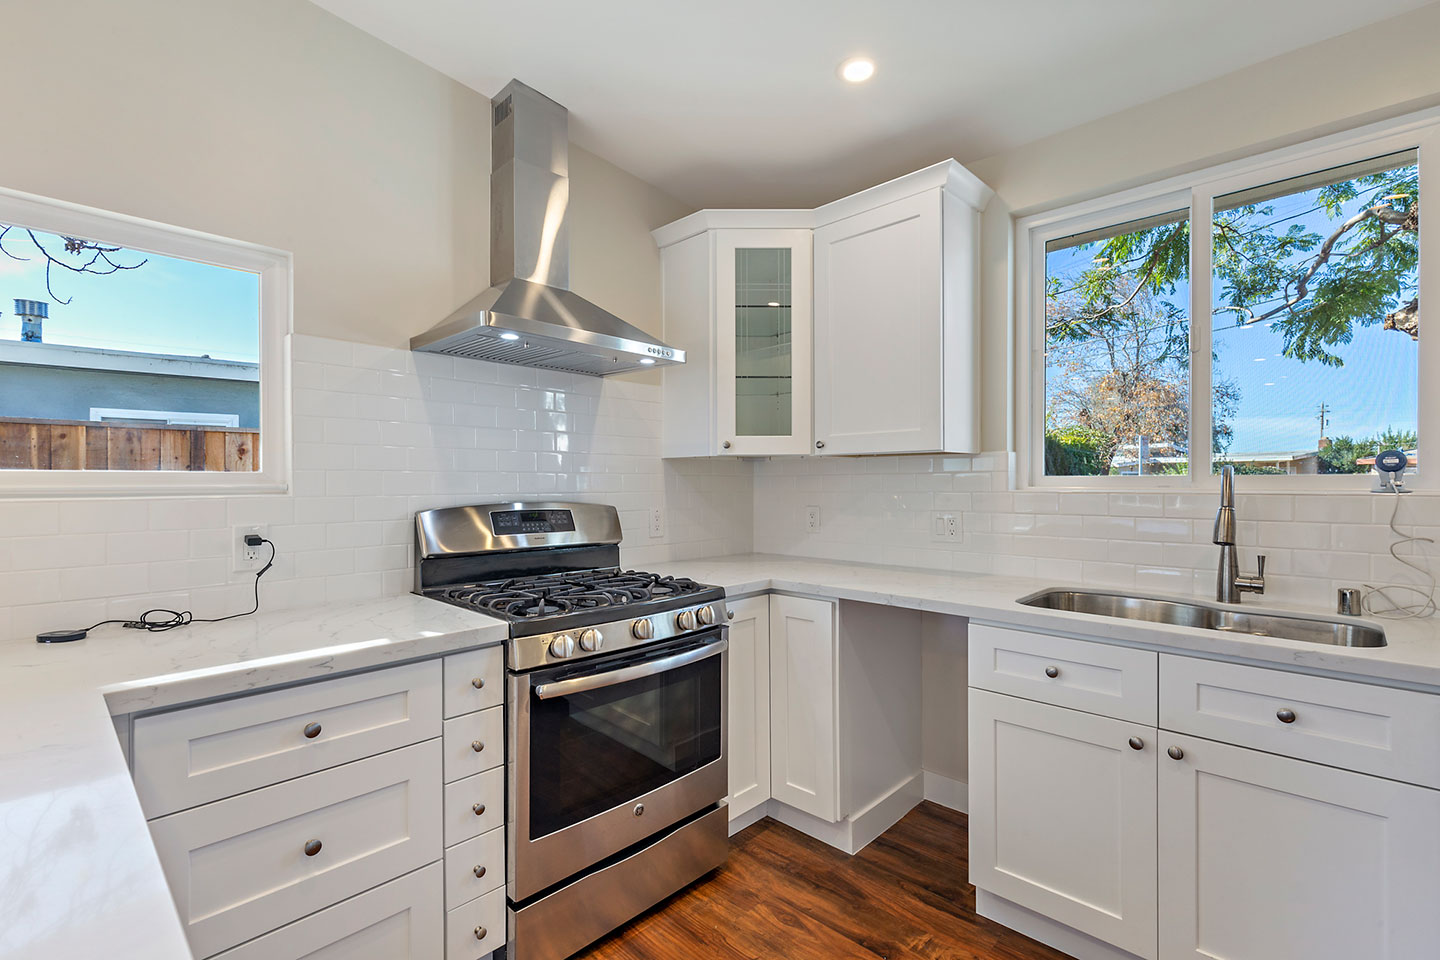 U shaped kitchen with drop in sink and quartz counter tops